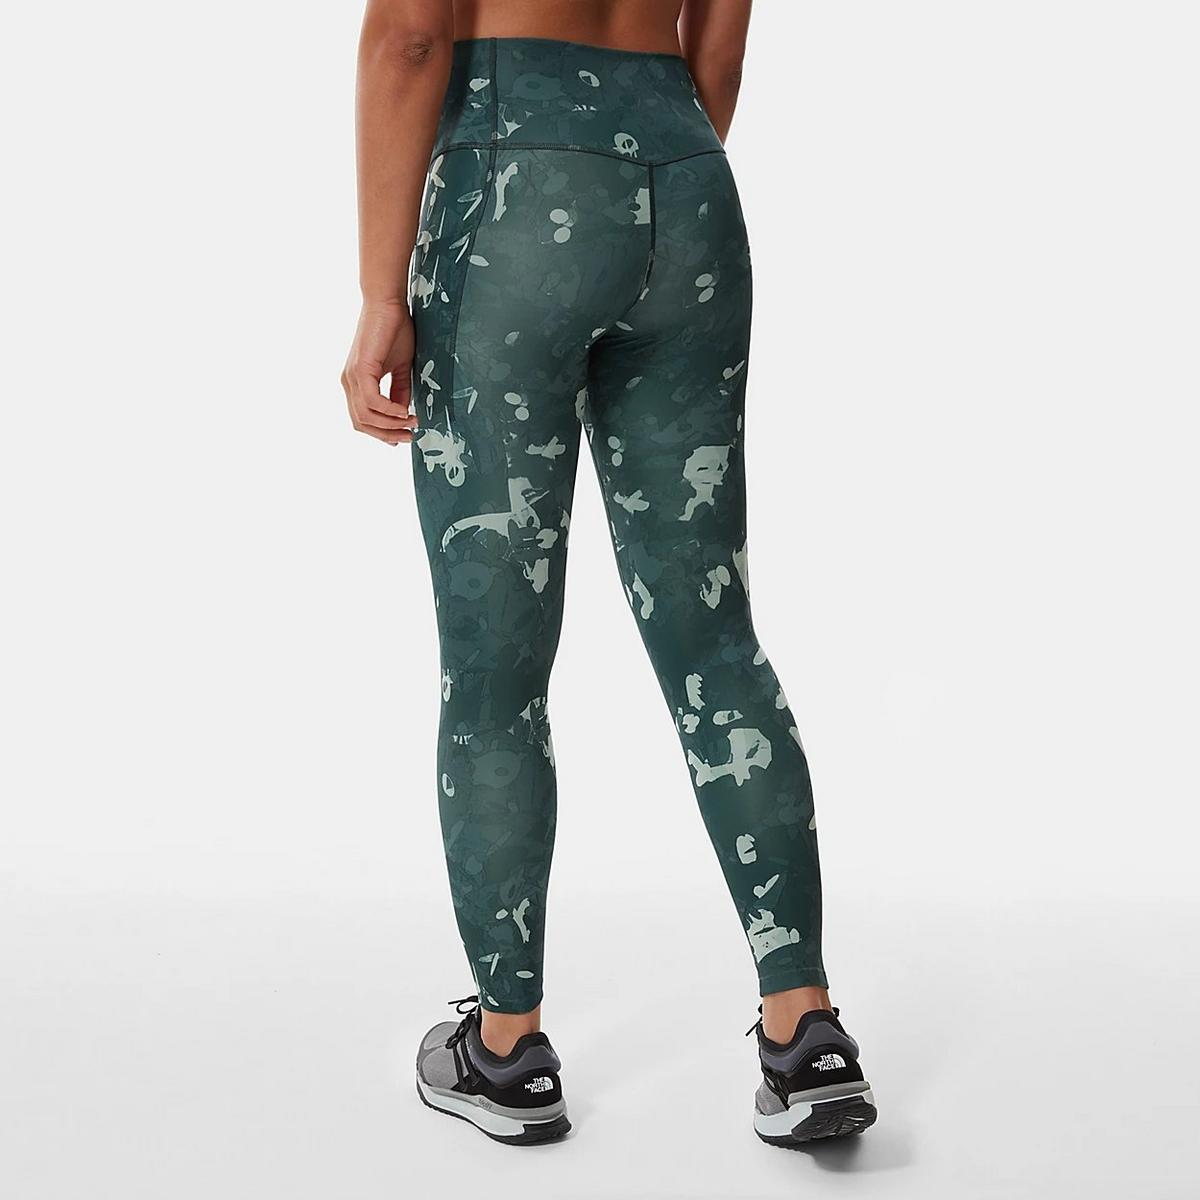 The North Face Women's Printed Motivation 7/8 Leggings - Green